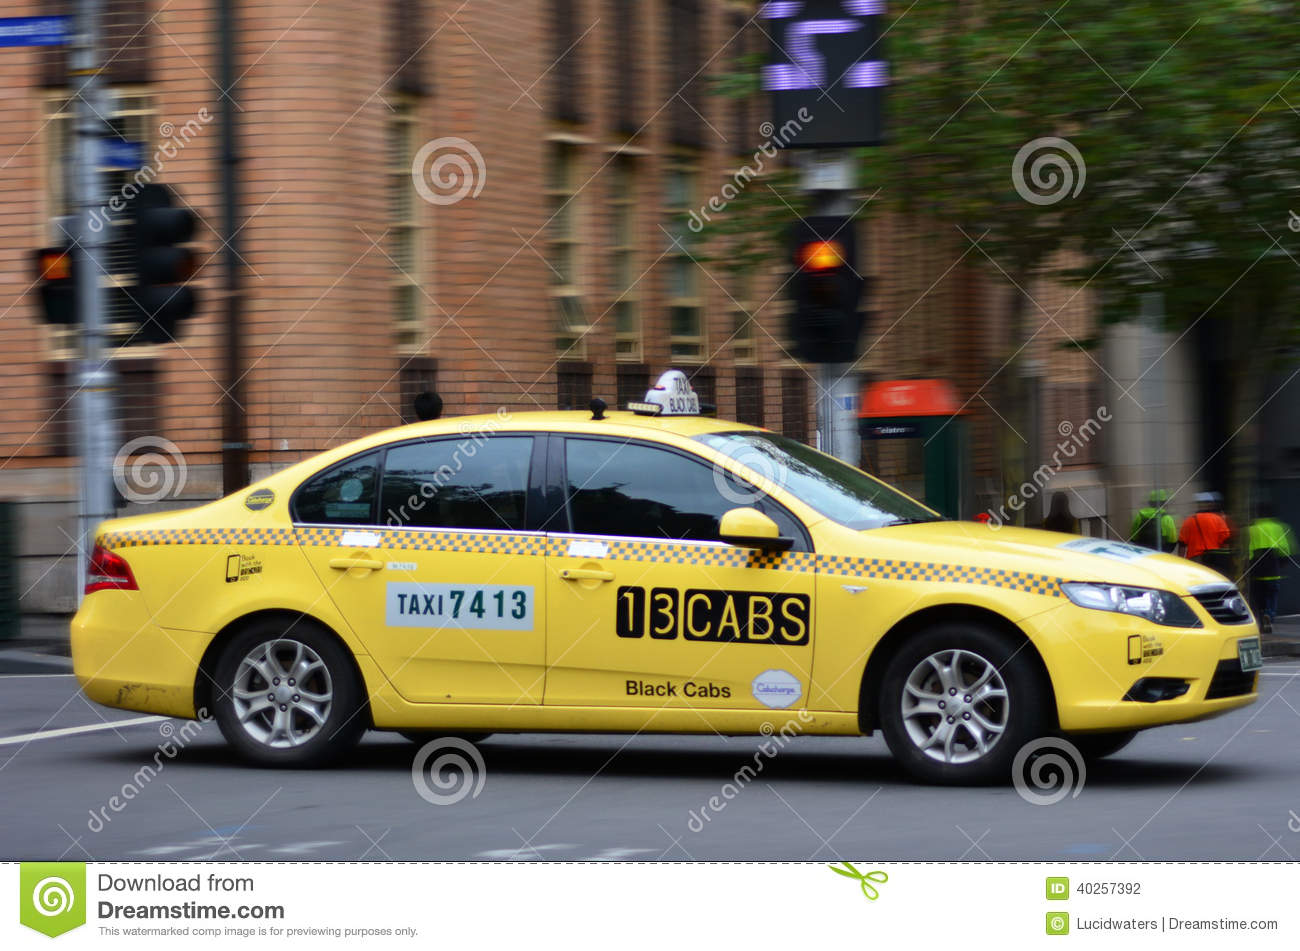 how to join 13 cabs